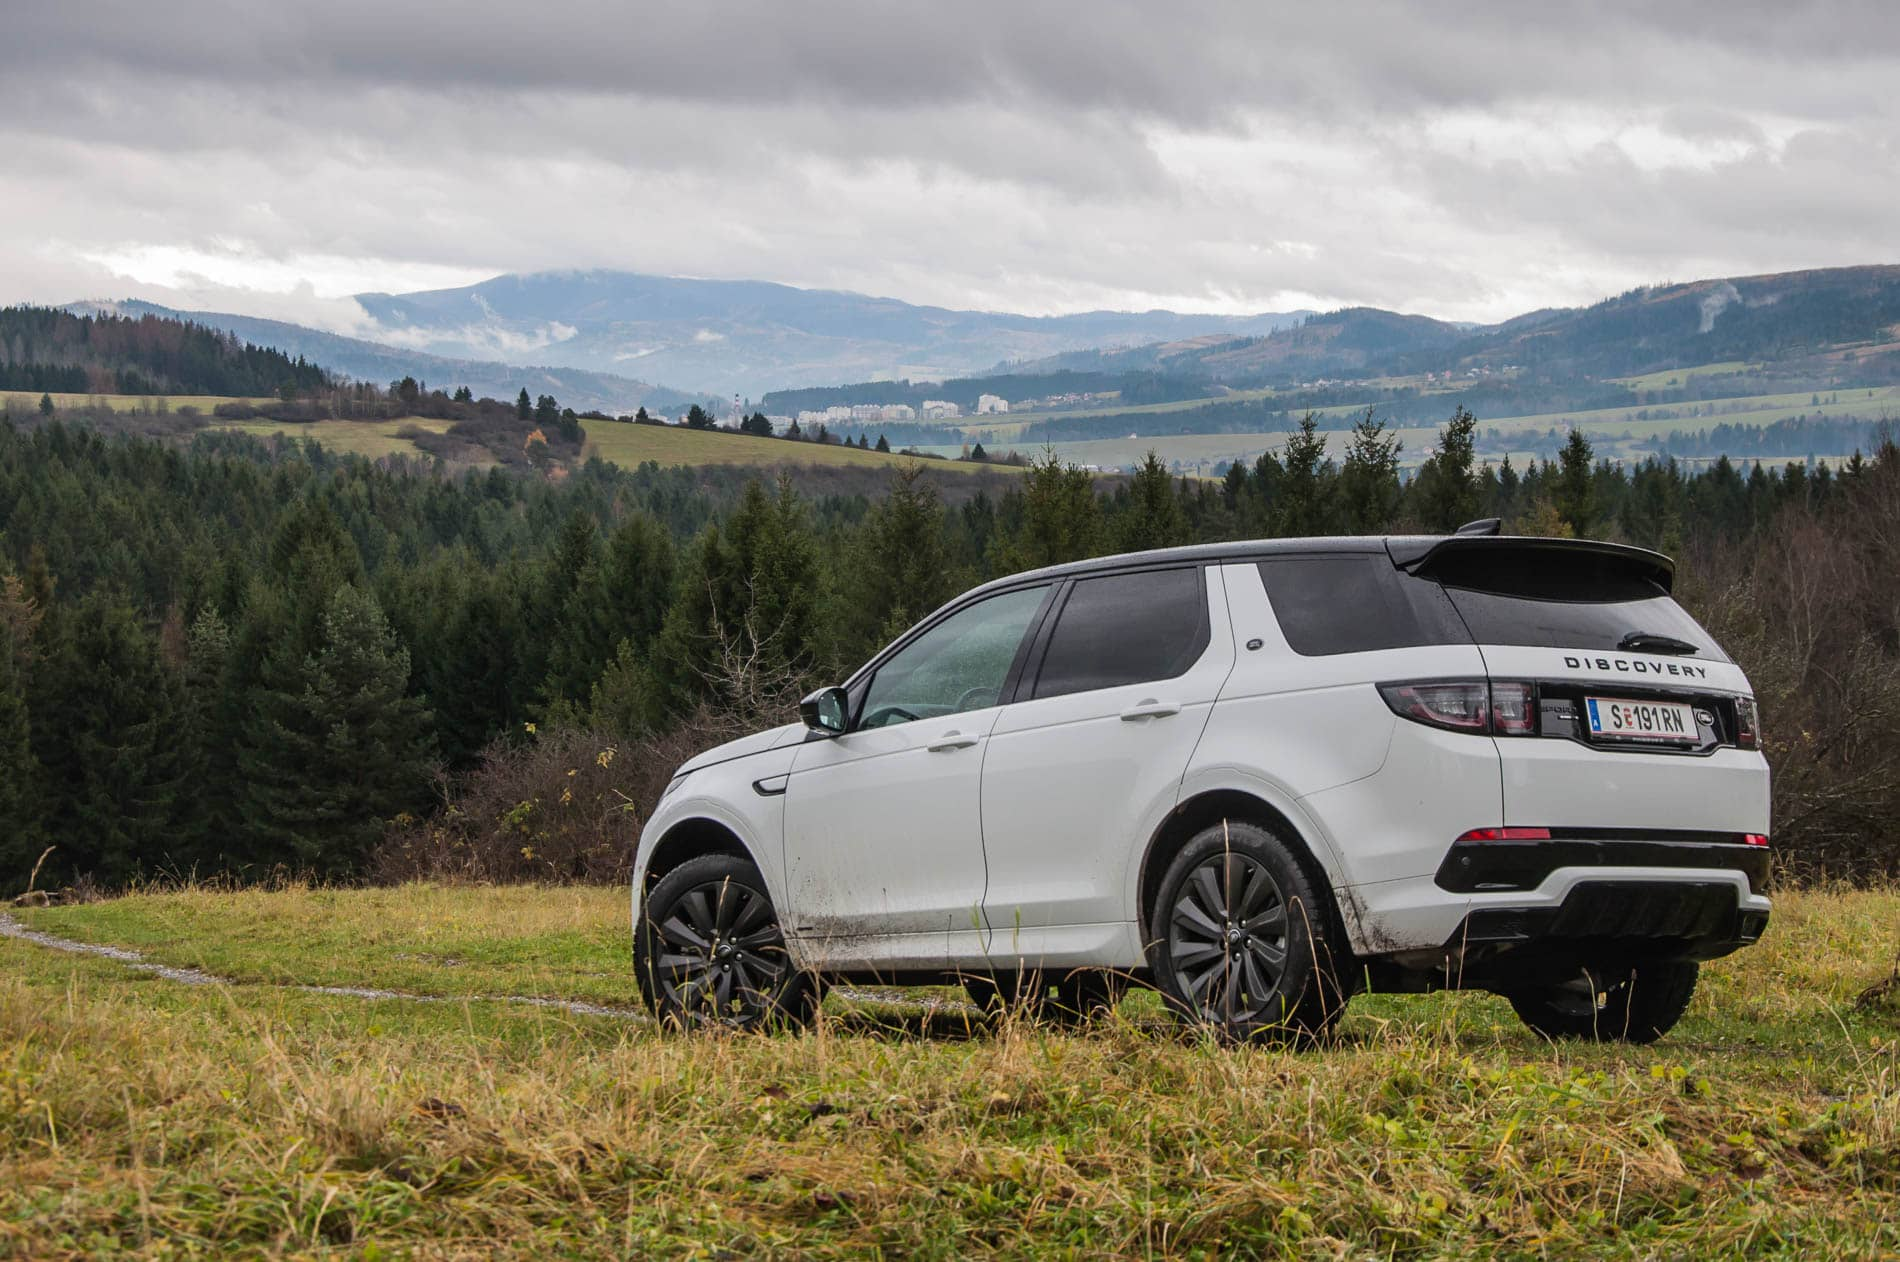 lr discovery sport 2020 (29 of 42)